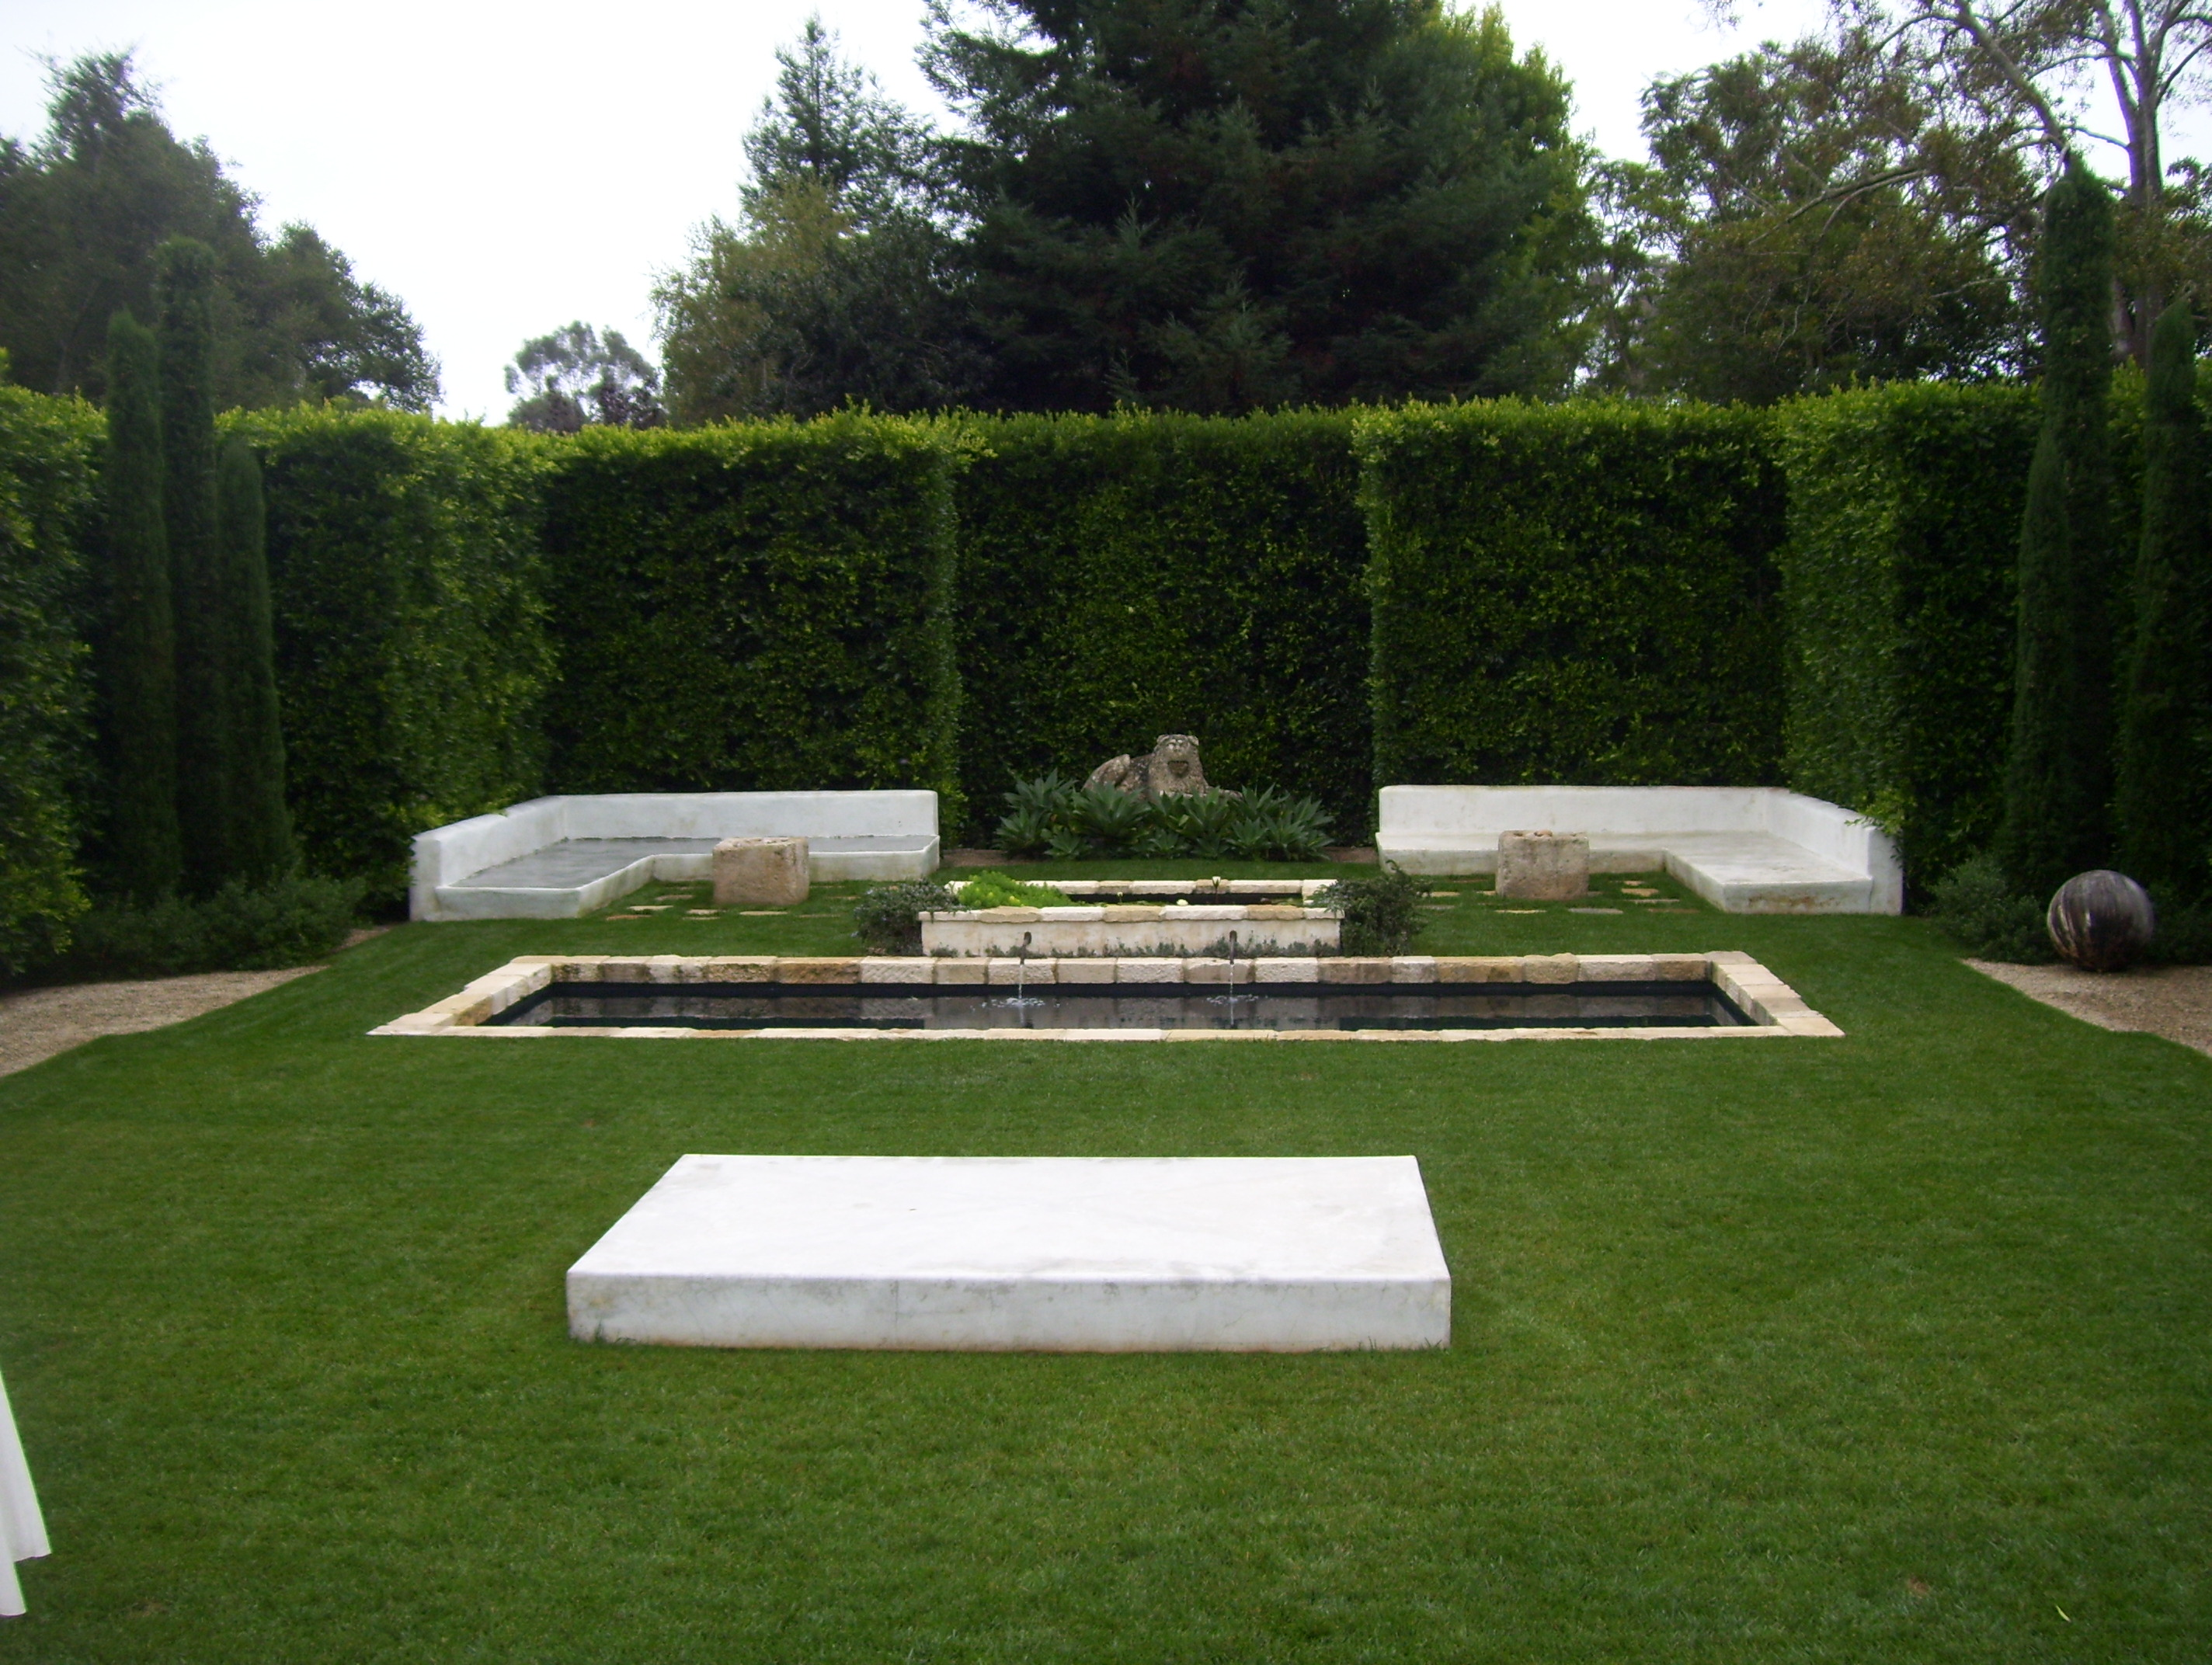 Landscaping for privacy in santa barbara ventura for Garden design ideas with hedges